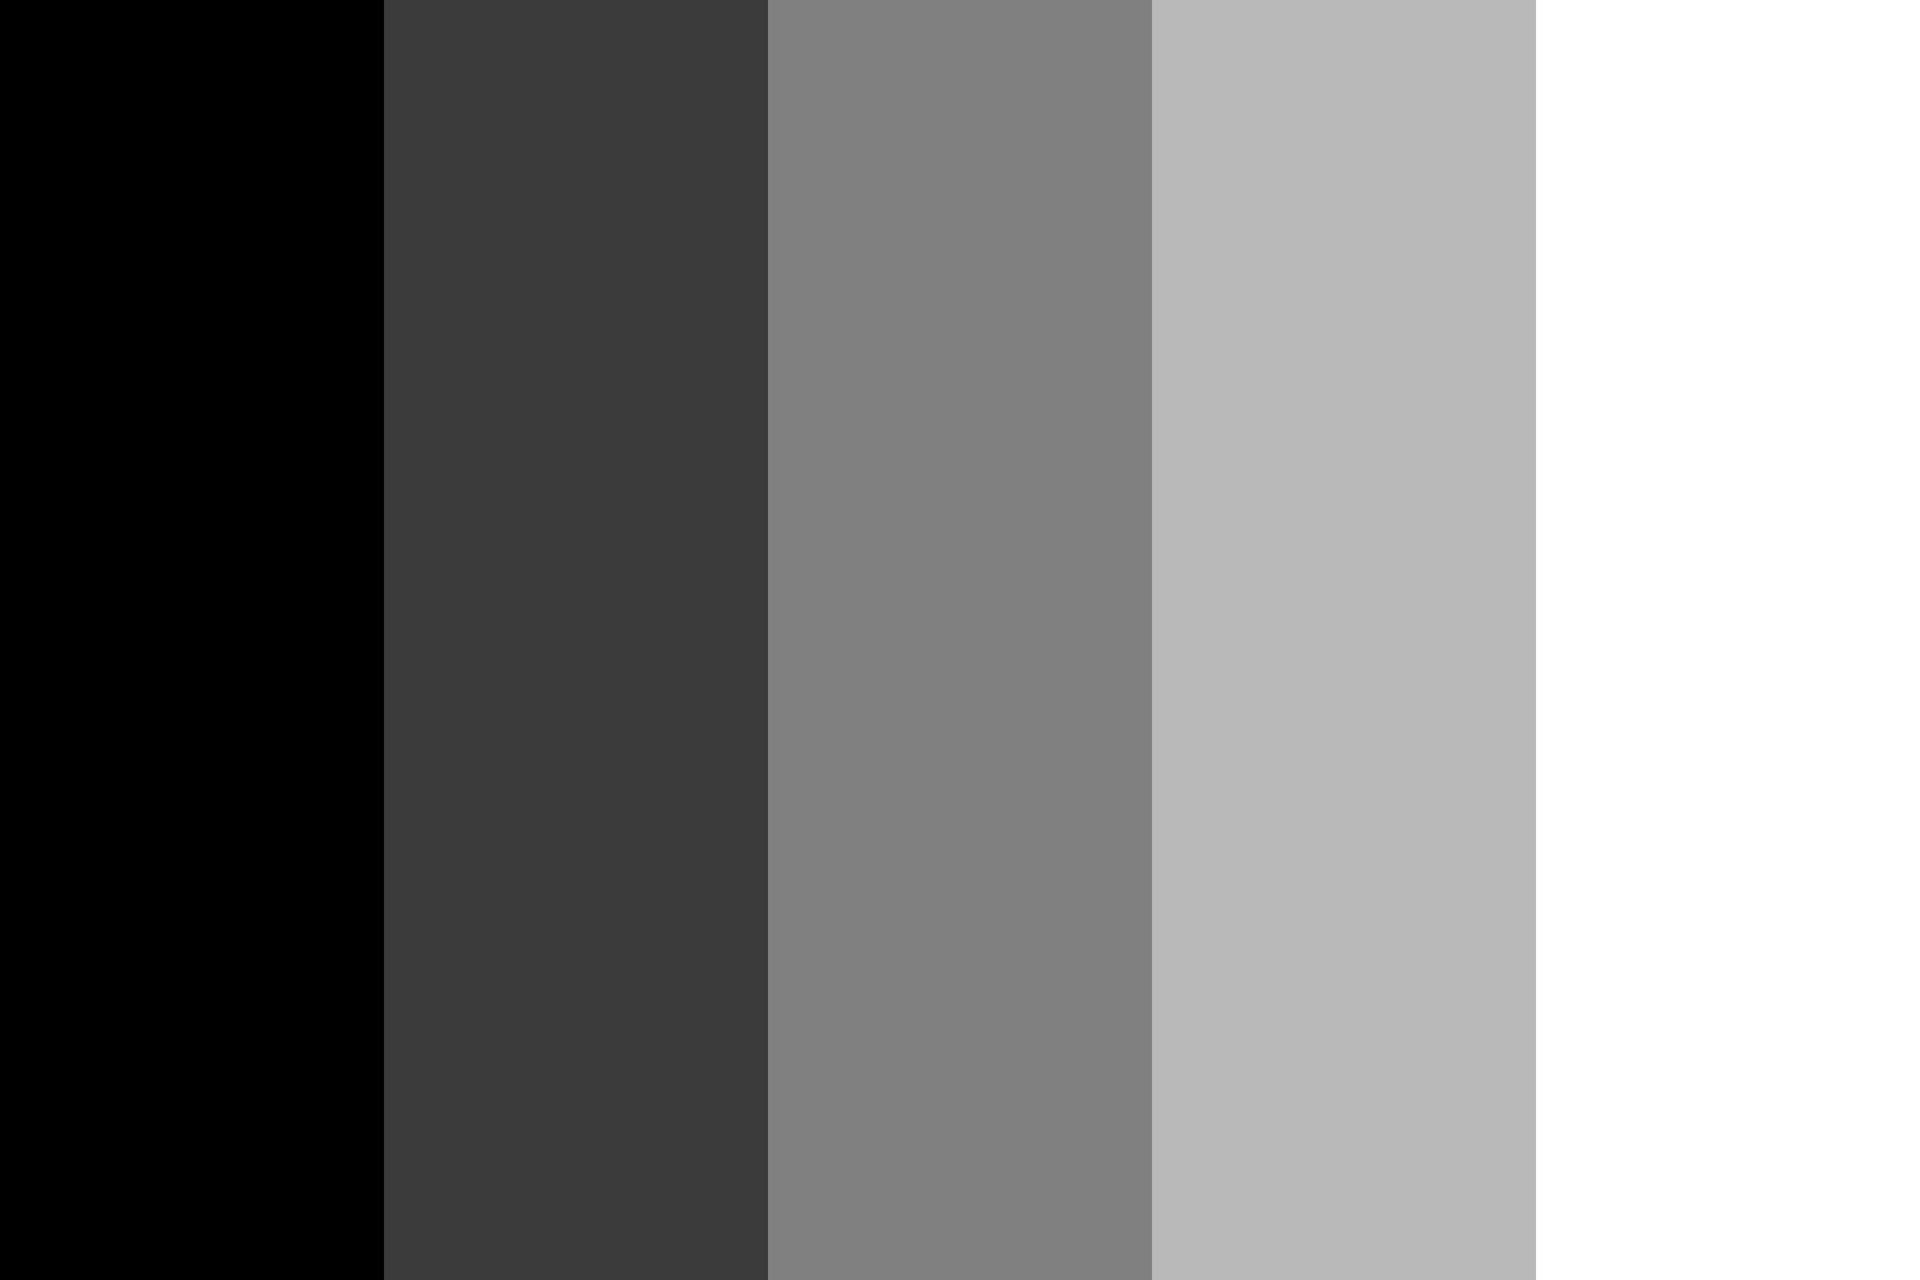 ...,  white lightens the underlying image and 50% gray causes no change